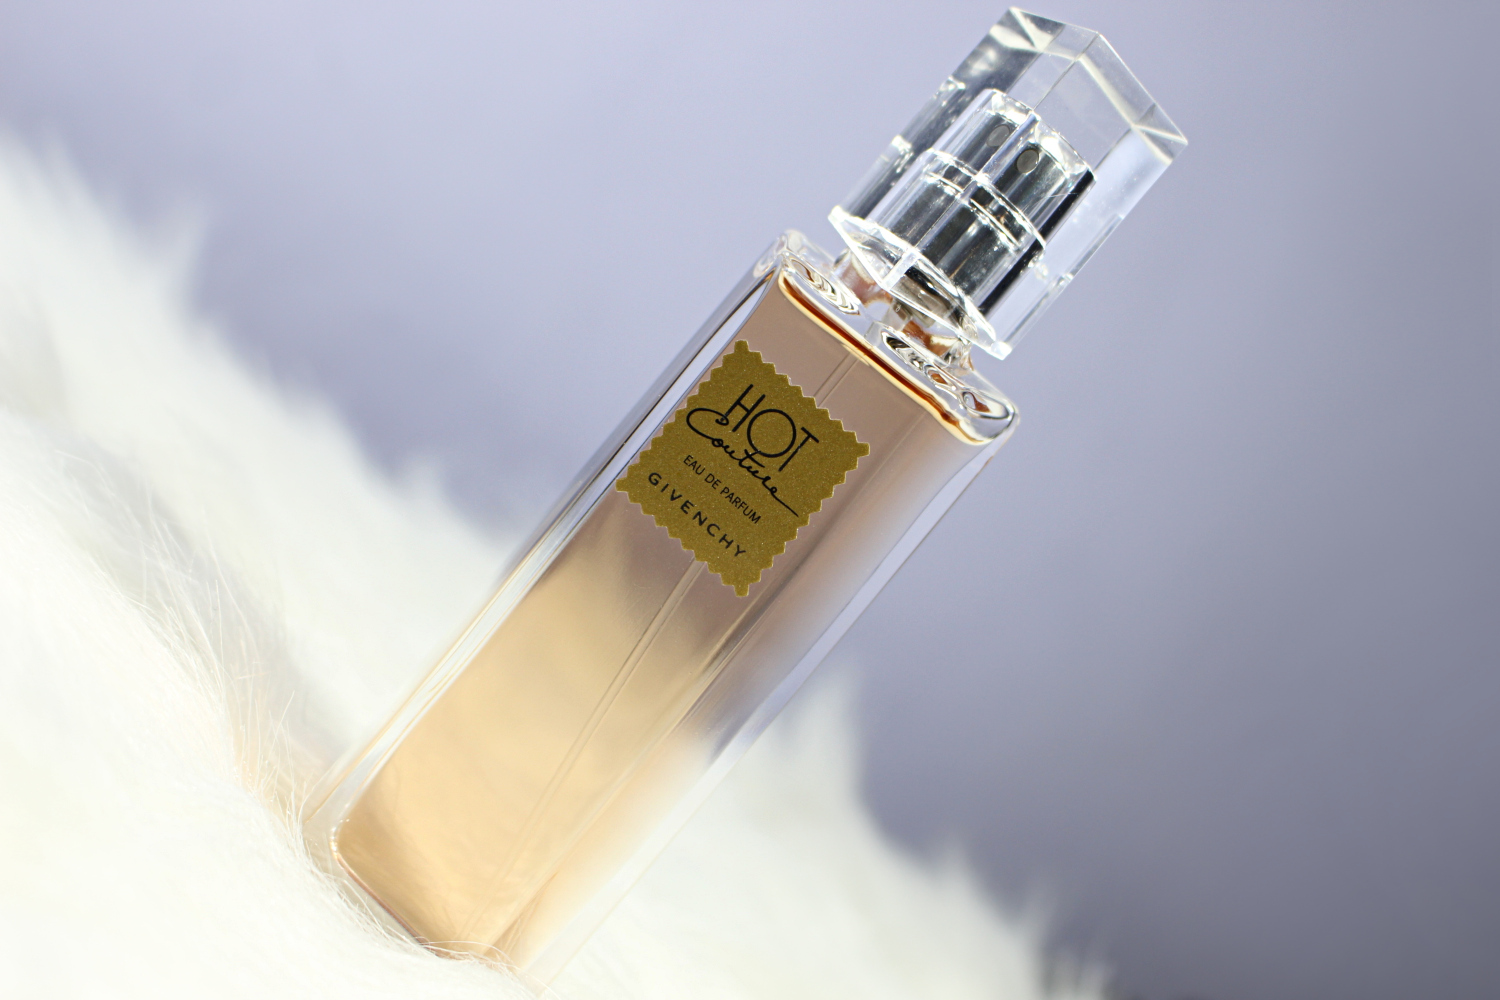 LVMH givenchy perfume close up picture